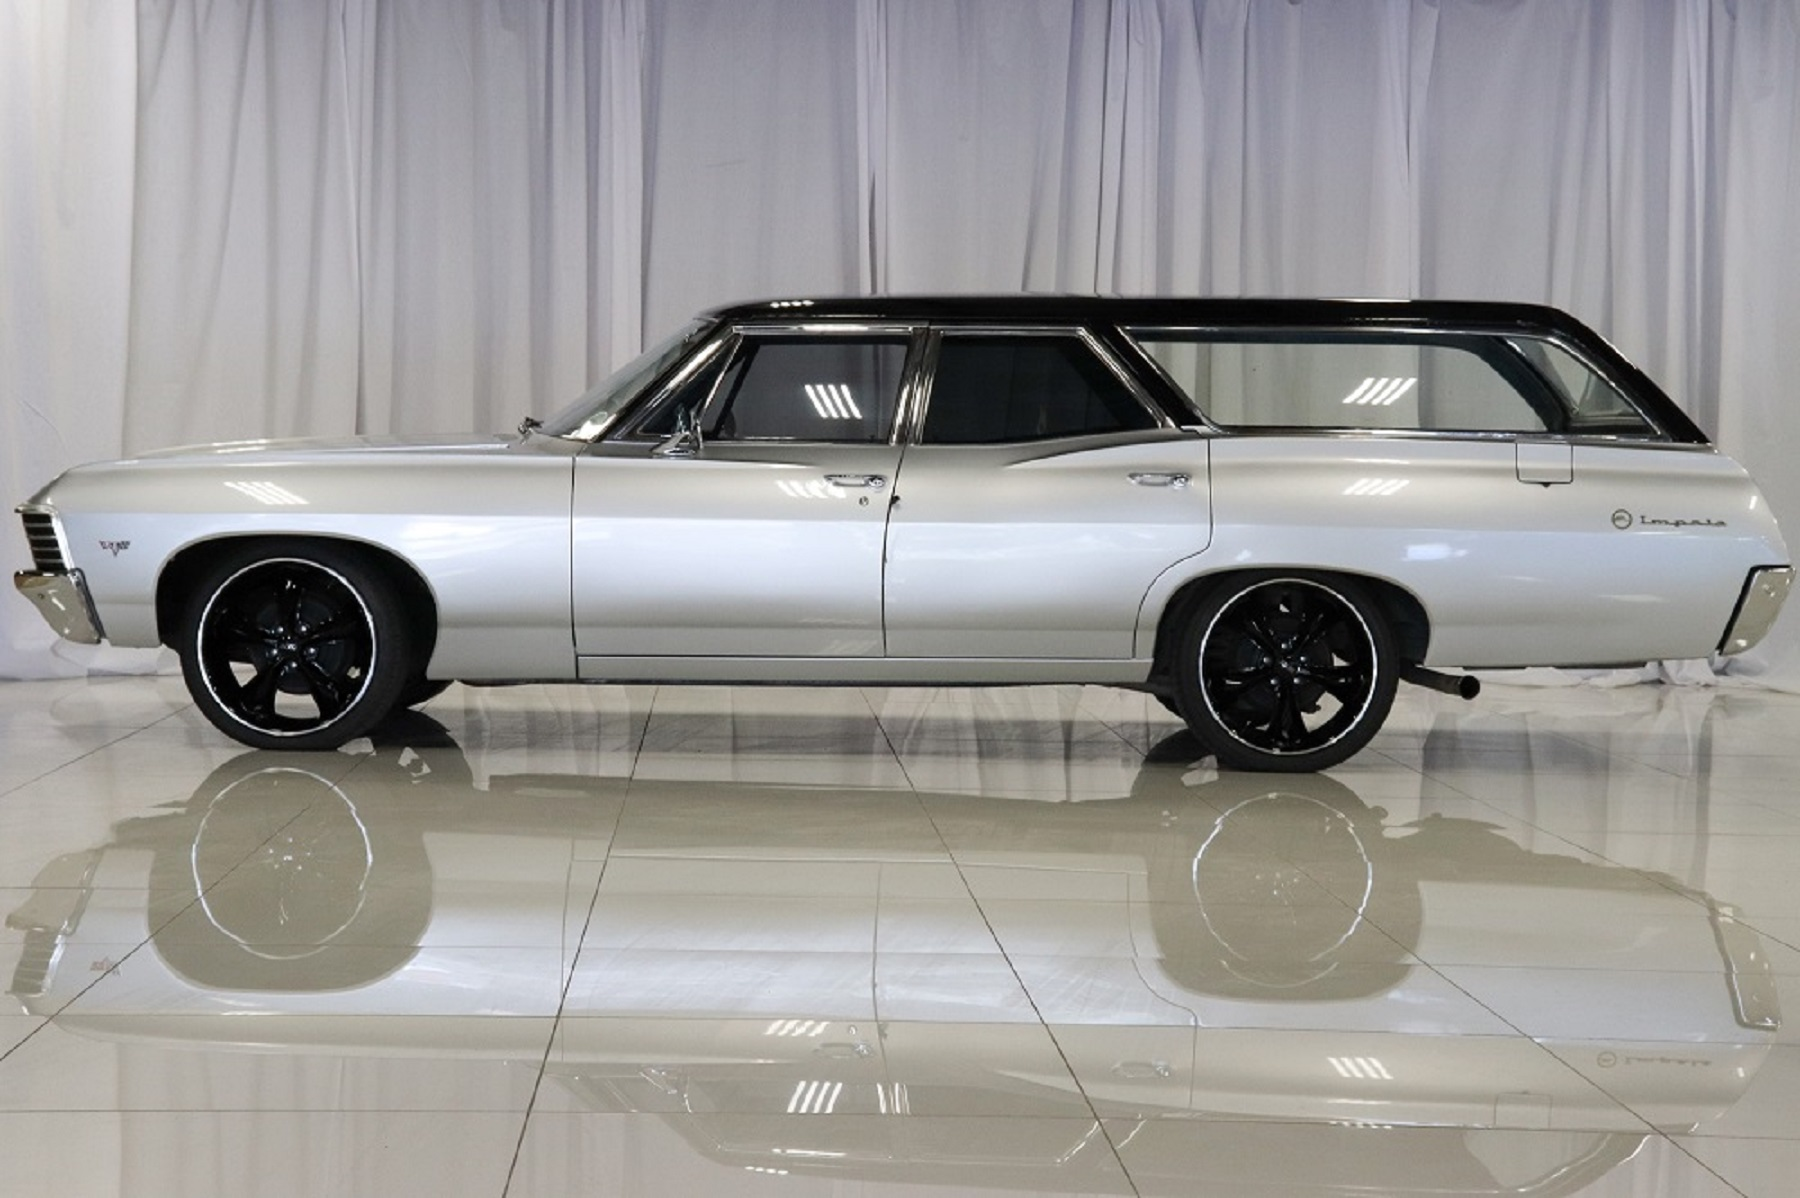 1968 Chevrolet Impala Station Wagon Creative Rides Custom Coupe Sold